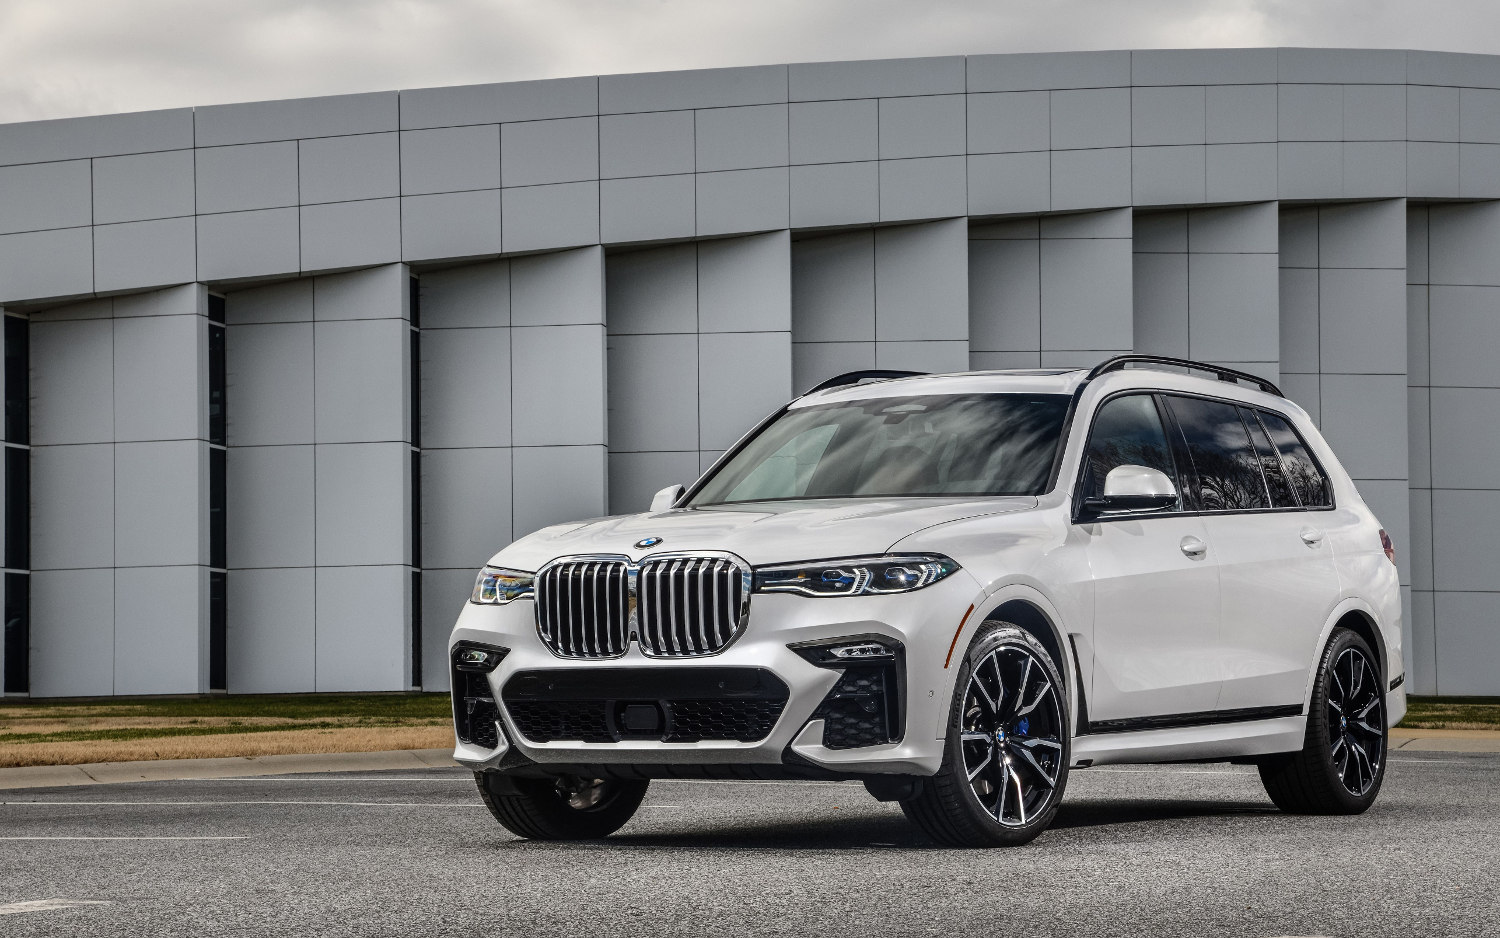 Comparison Audi Q8 Hybrid 2018 Vs Bmw X7 Iperformance 2019